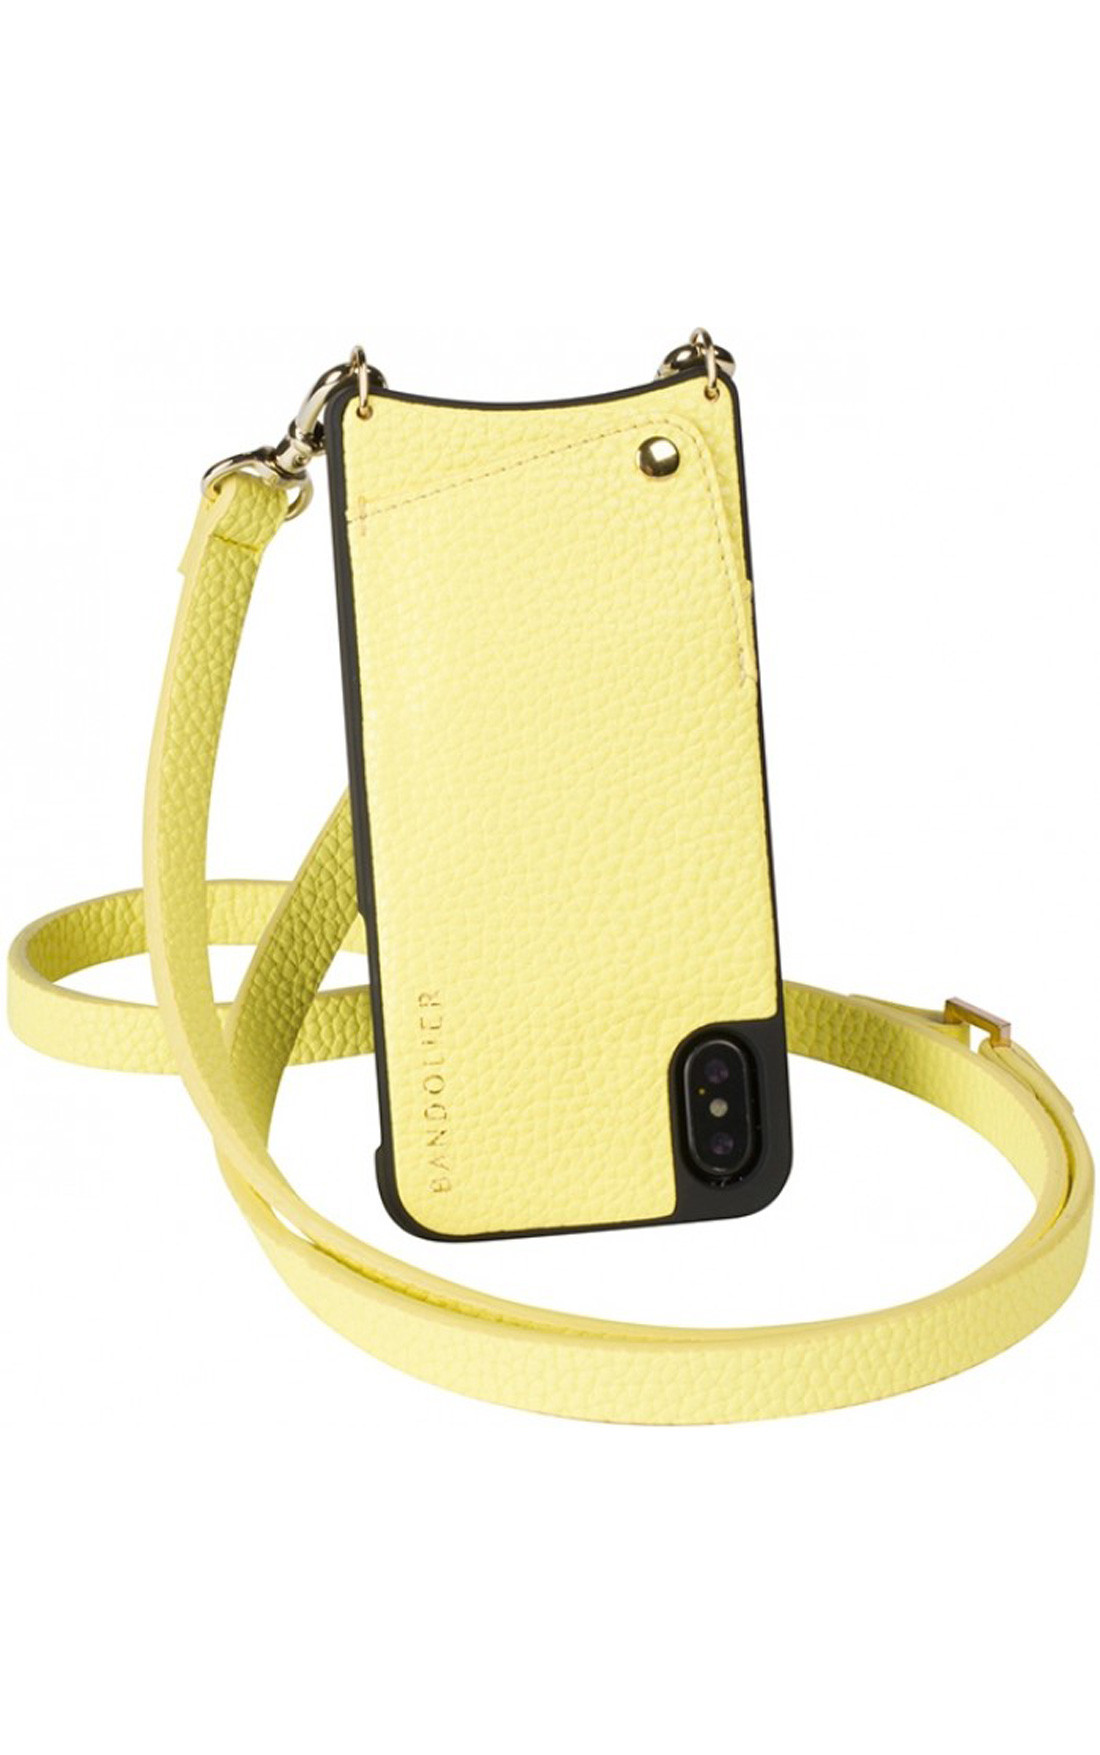 Bandolier - Carly Yellow iPhone Case (3160)